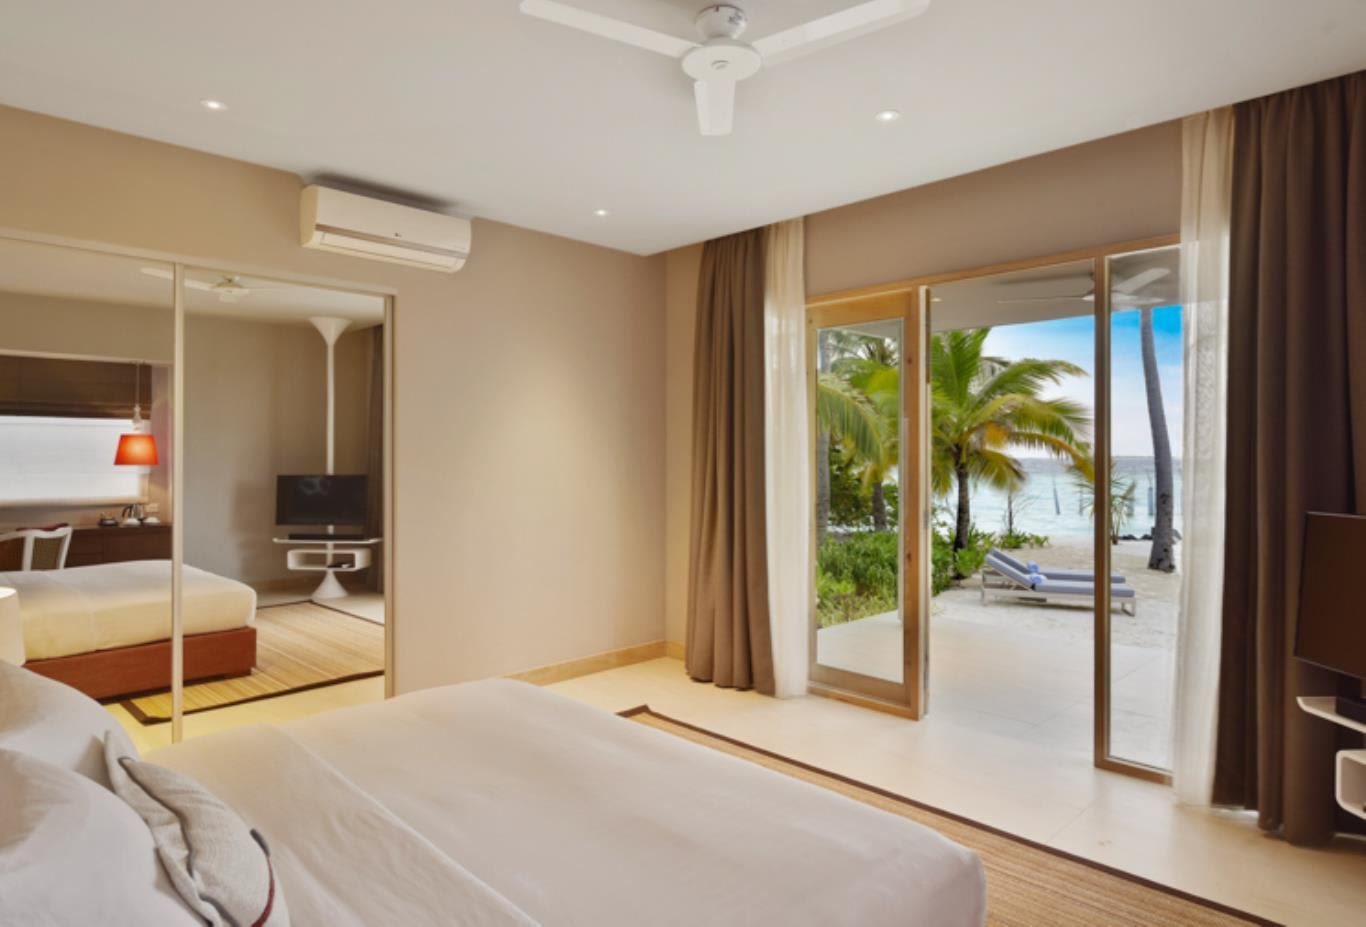 Beach Bungalow bedroom